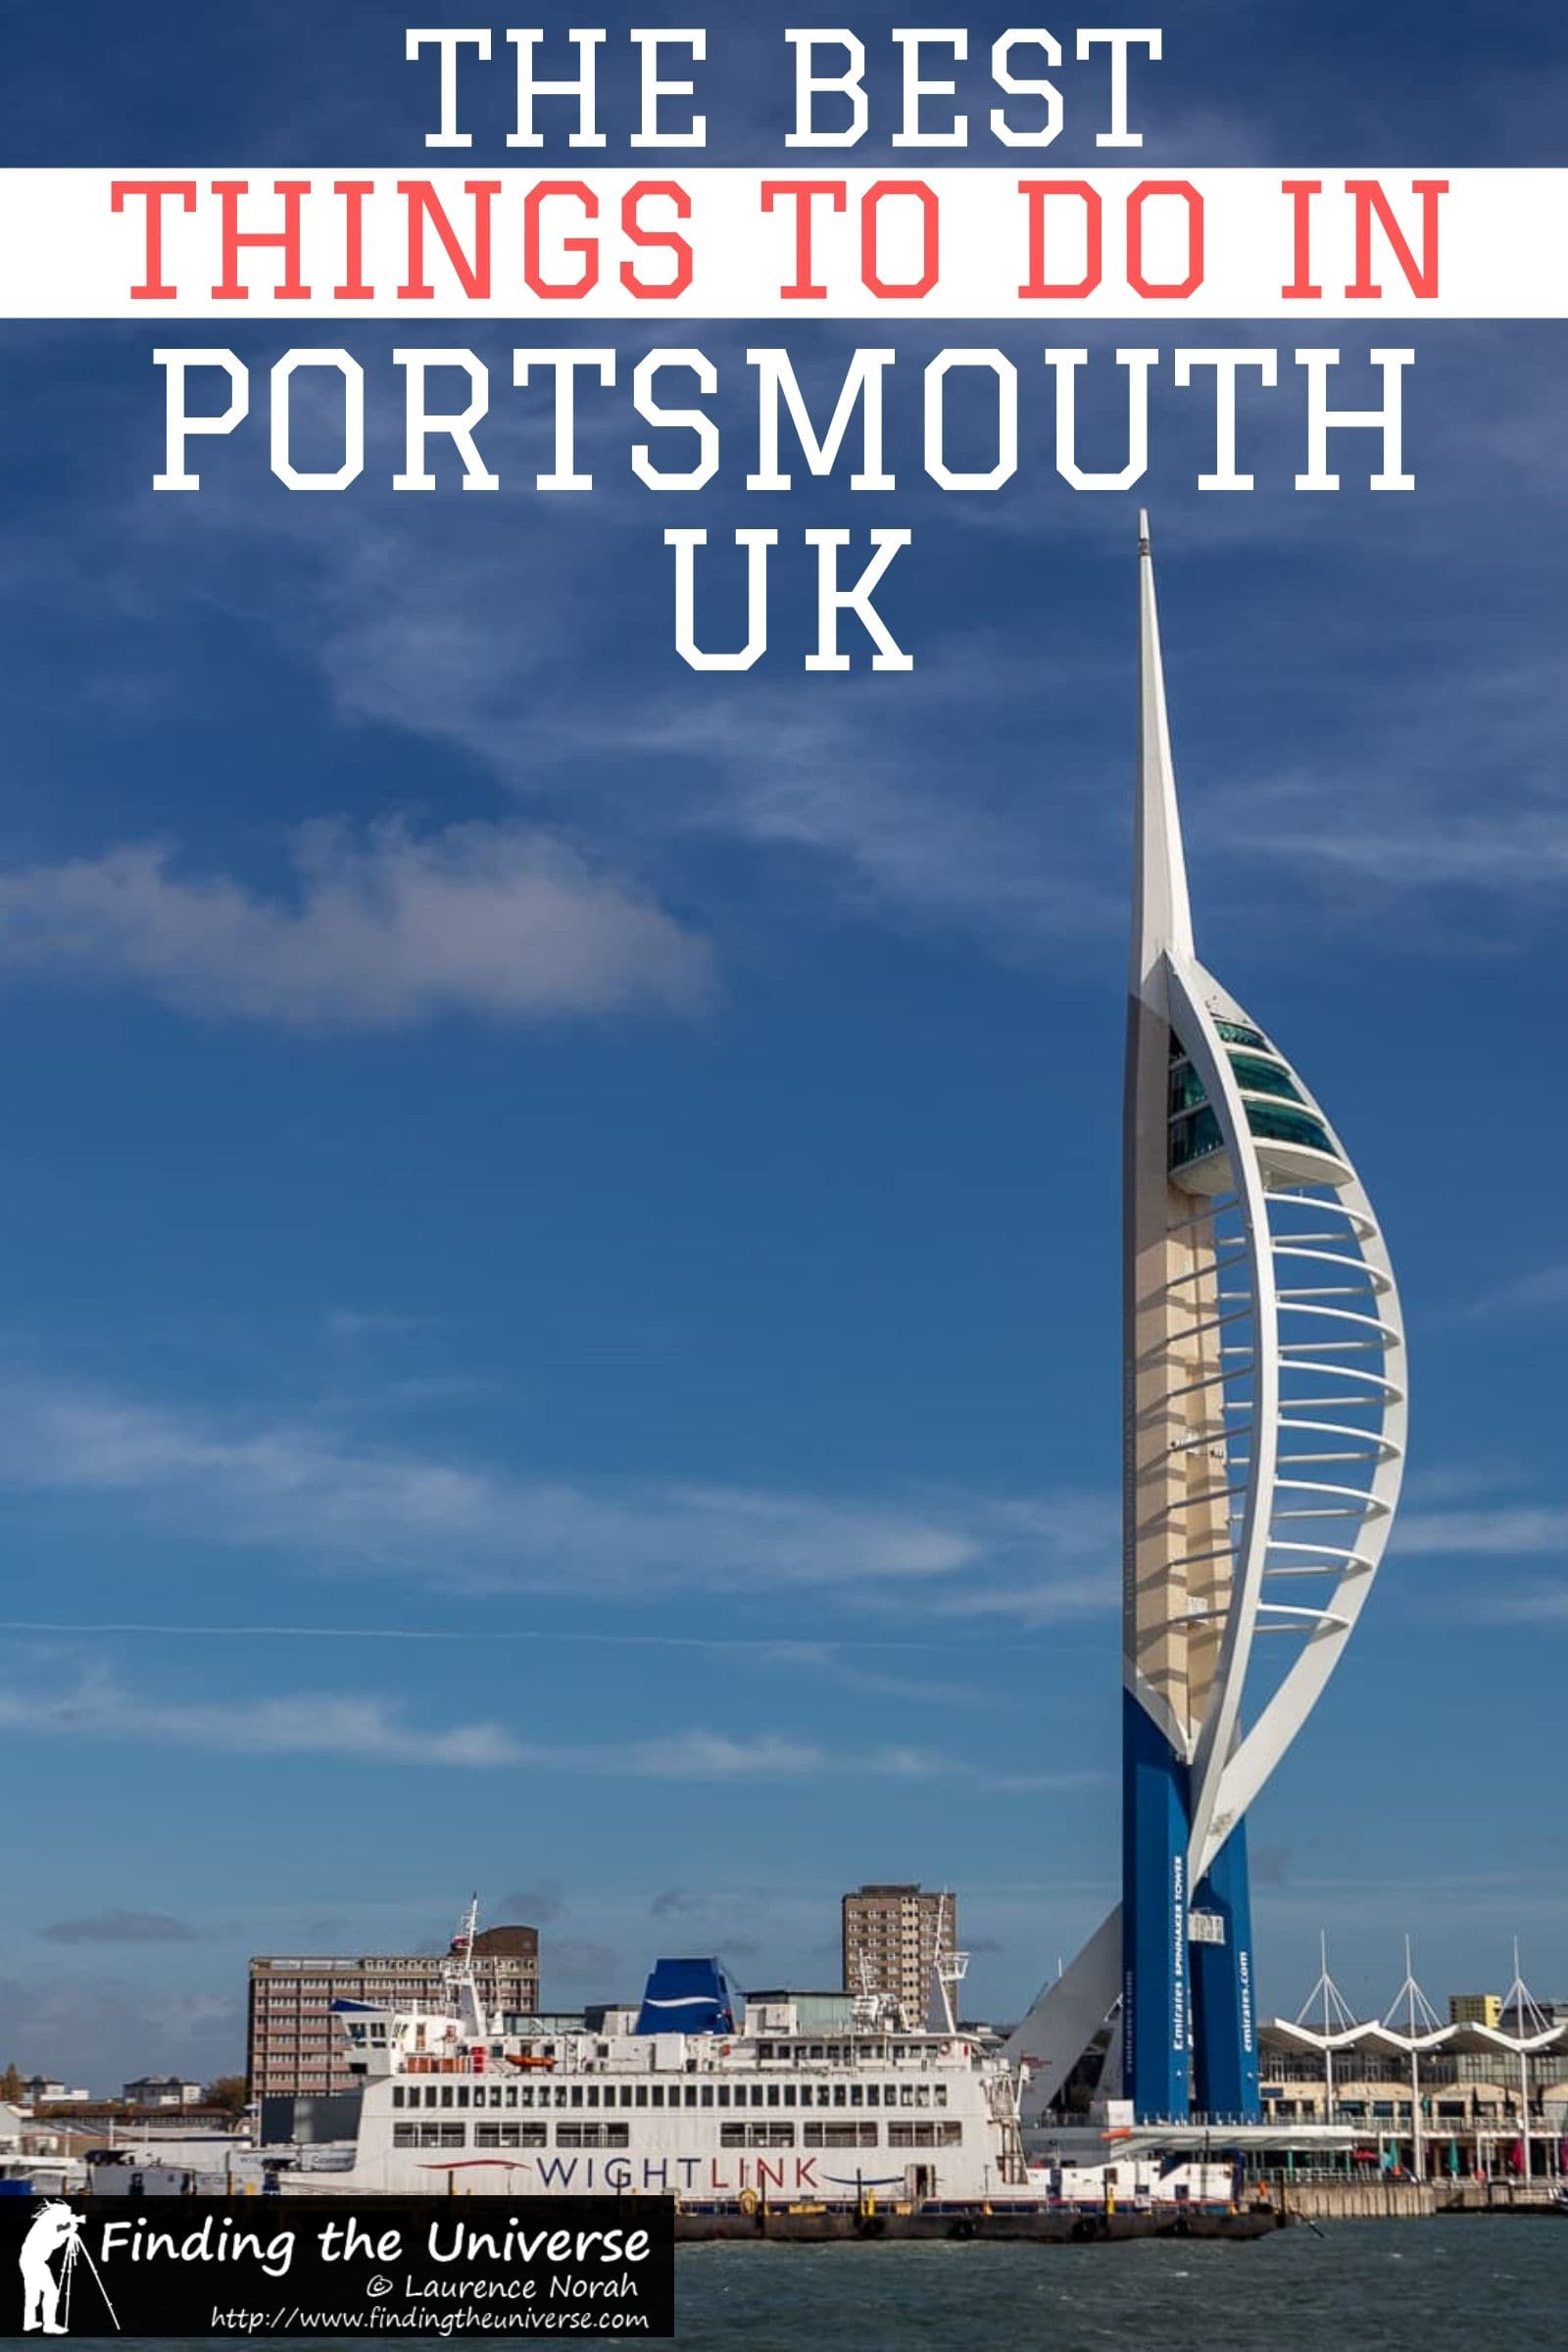 A detailed guide to things to do in Portsmouth, including the historic dockyard, D-Day, fortifications and more!